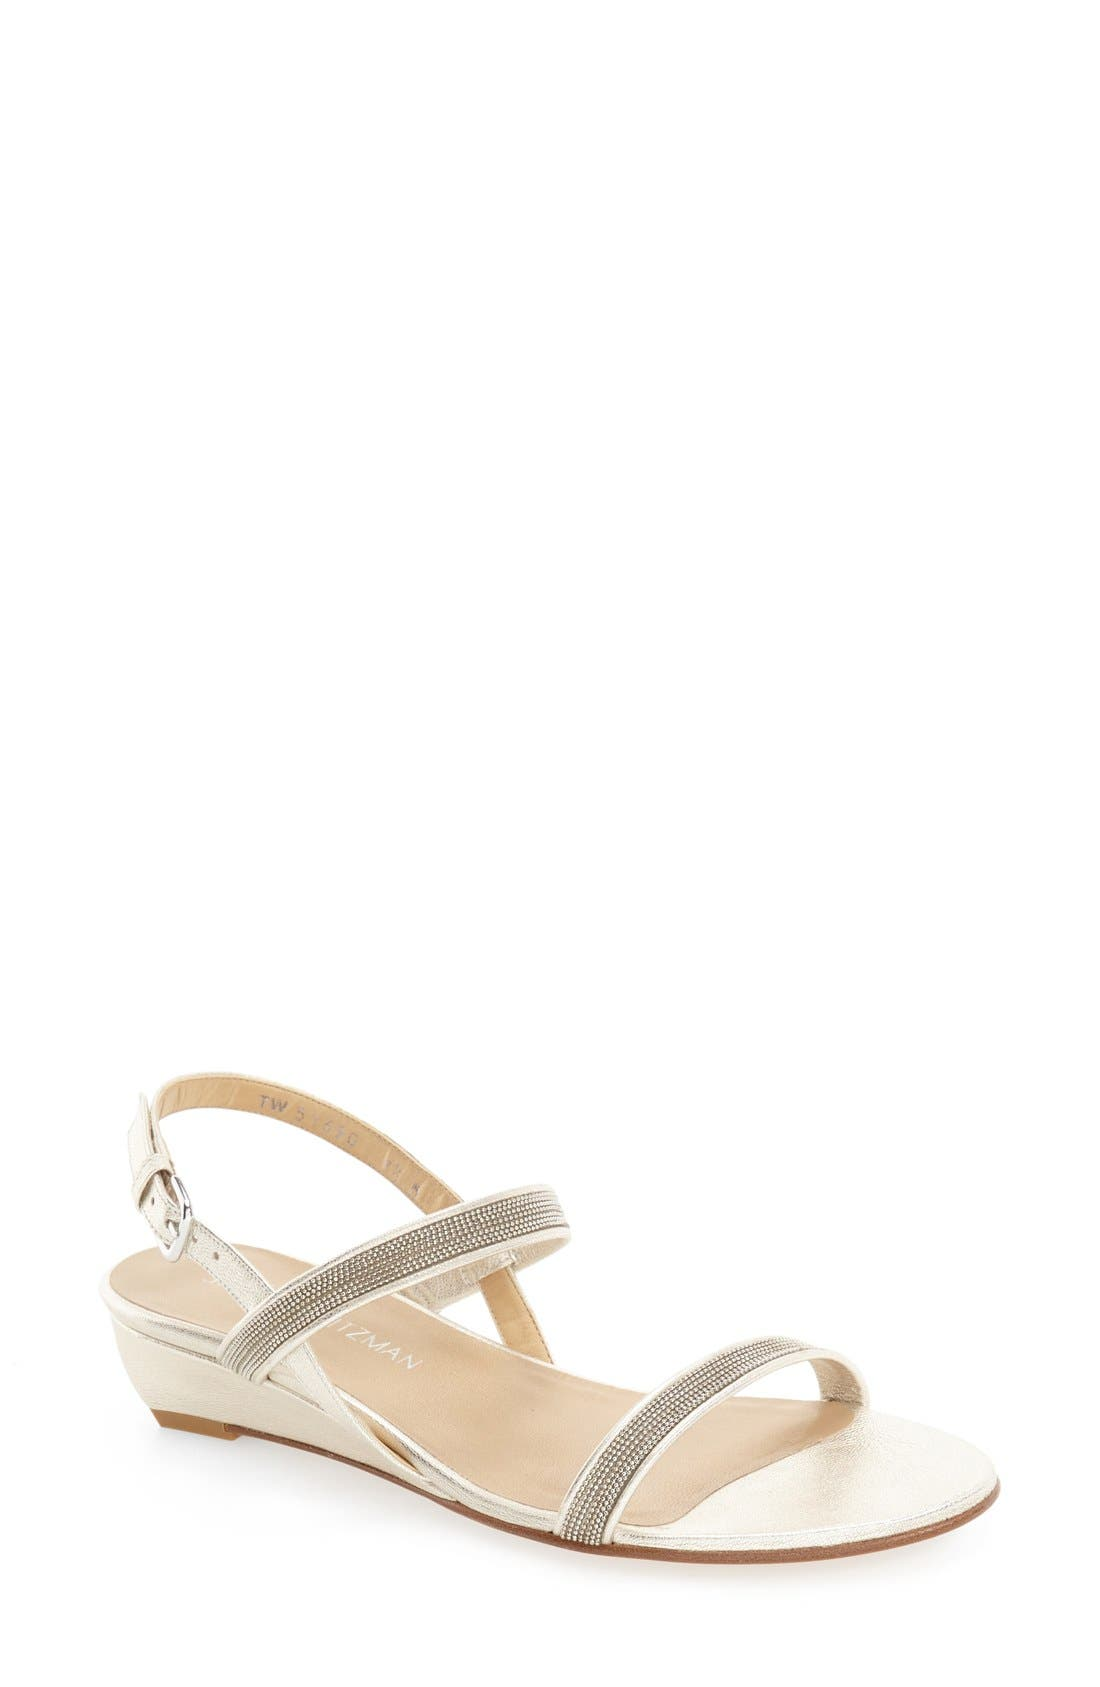 Main Image - Stuart Weitzman 'In Chains' Wedge Sandal (Women)